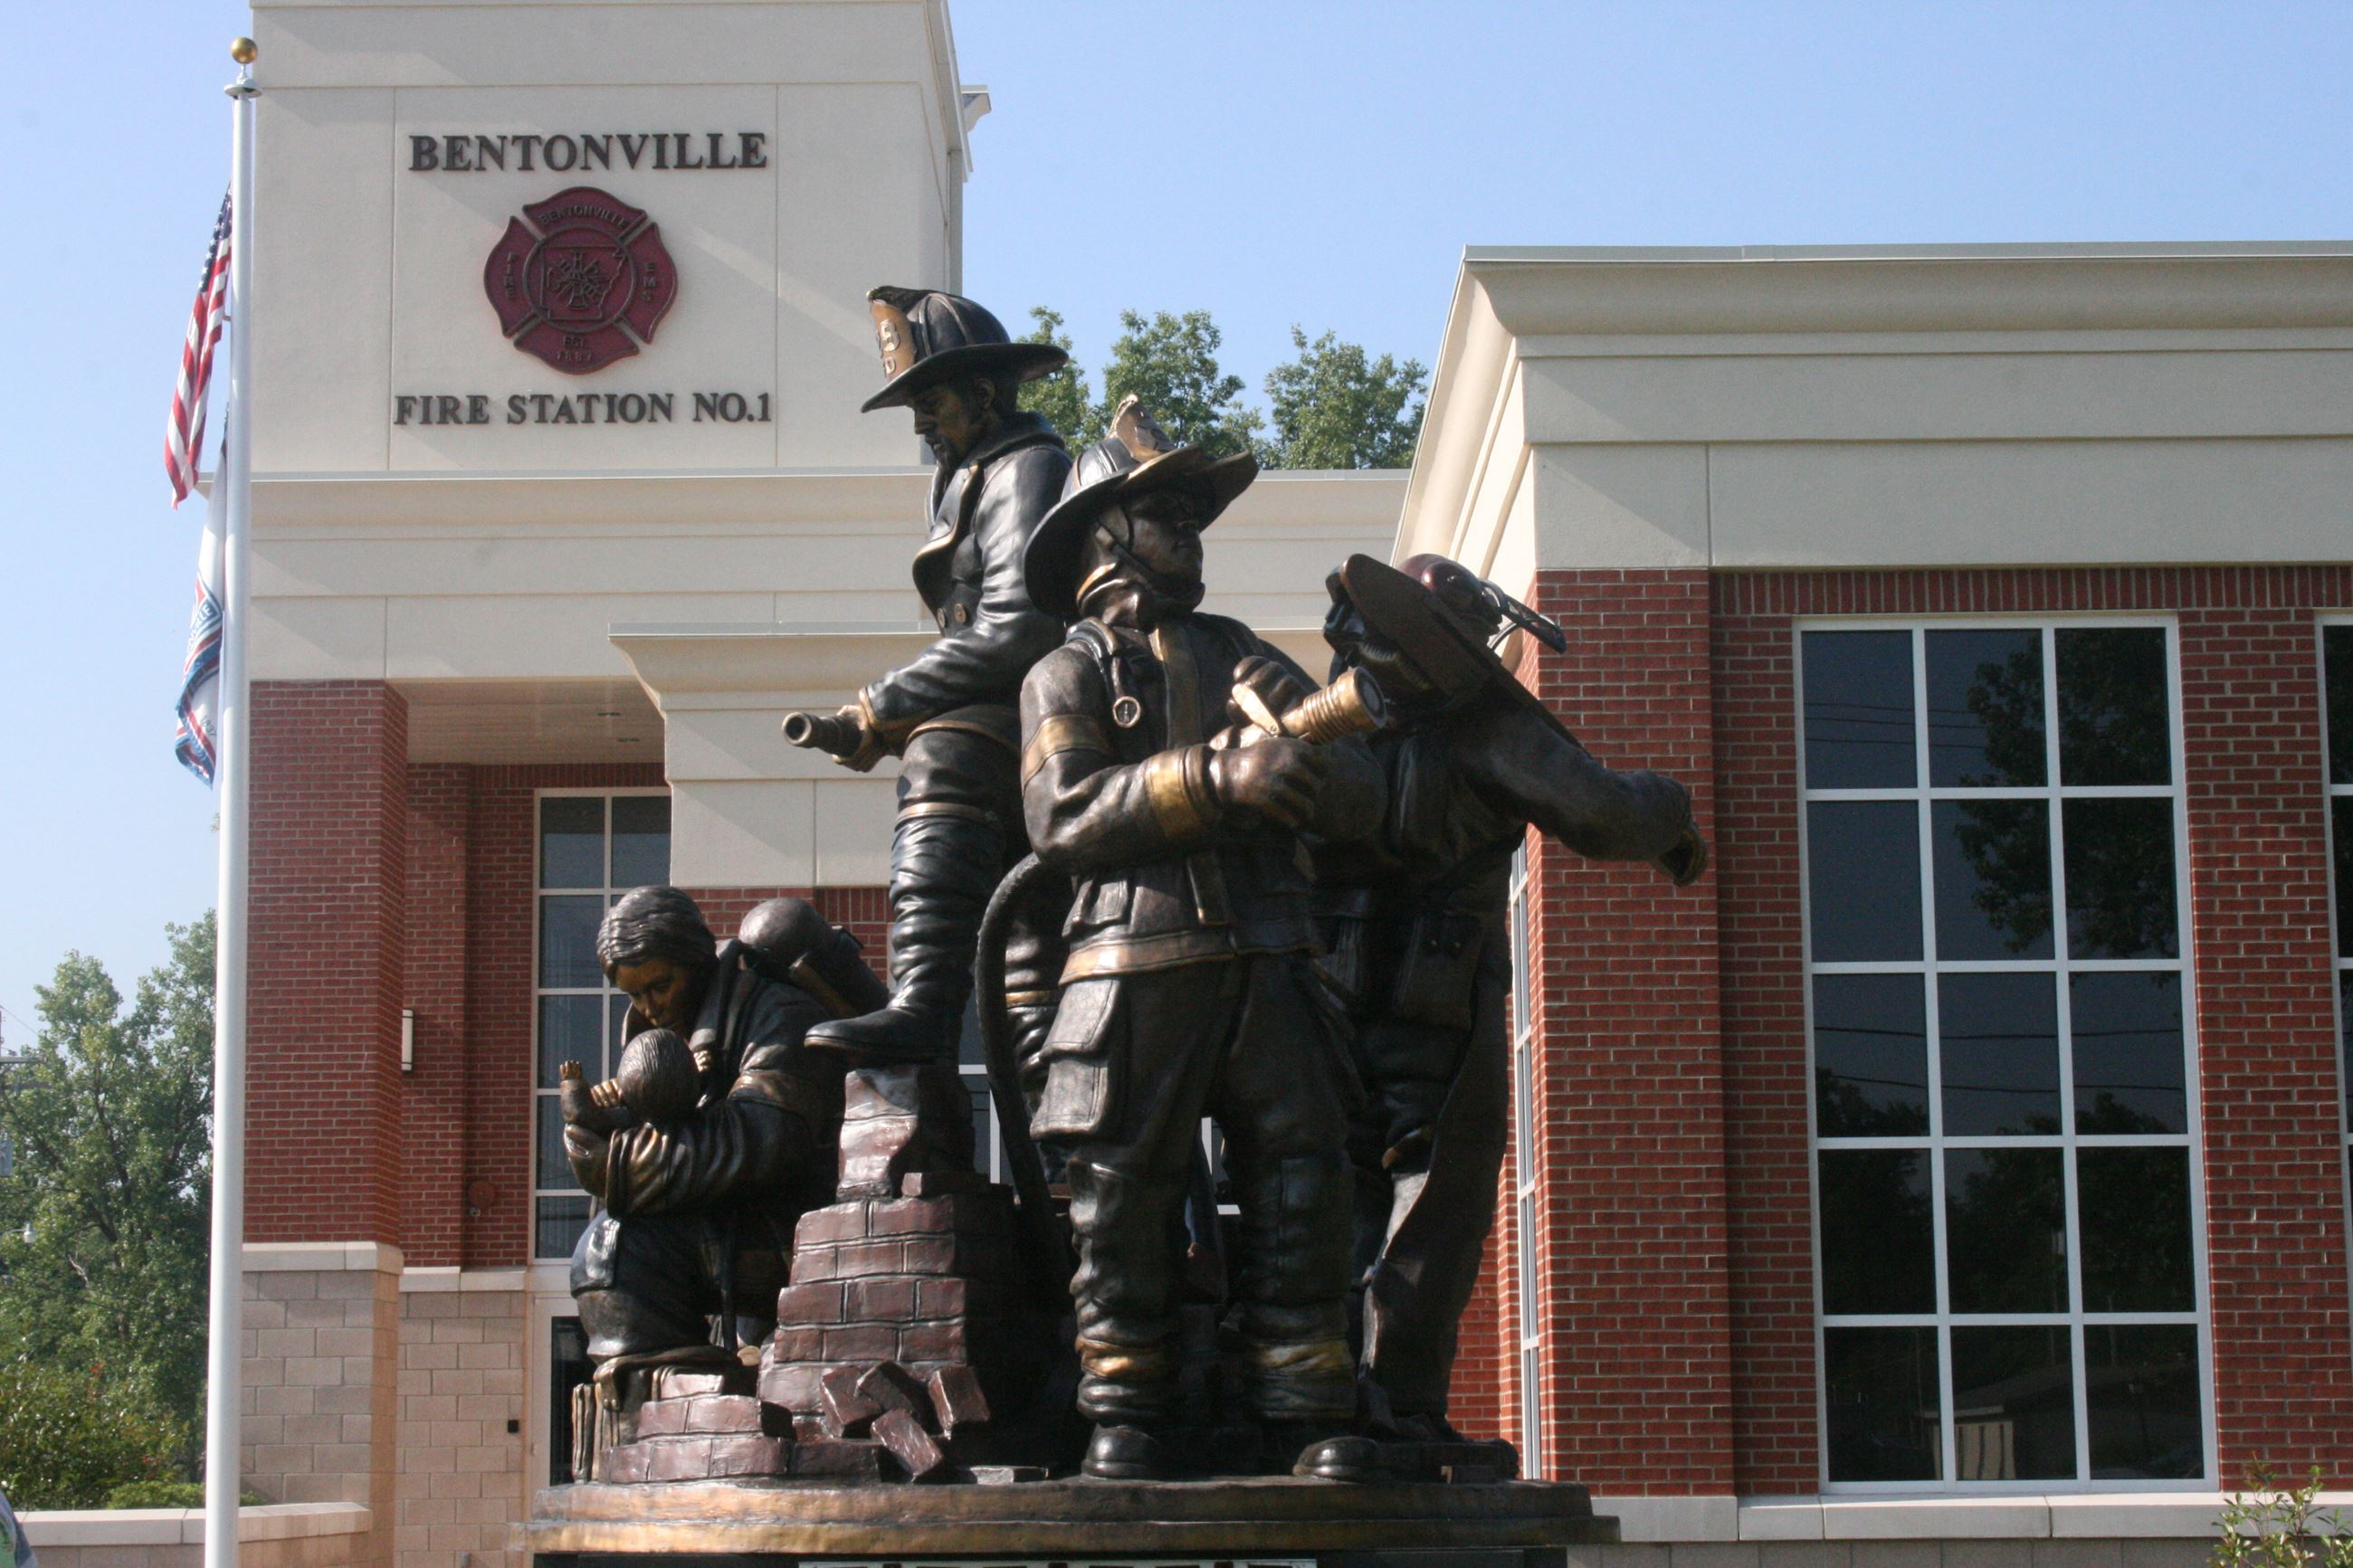 Rendering of Fire Station with a statue